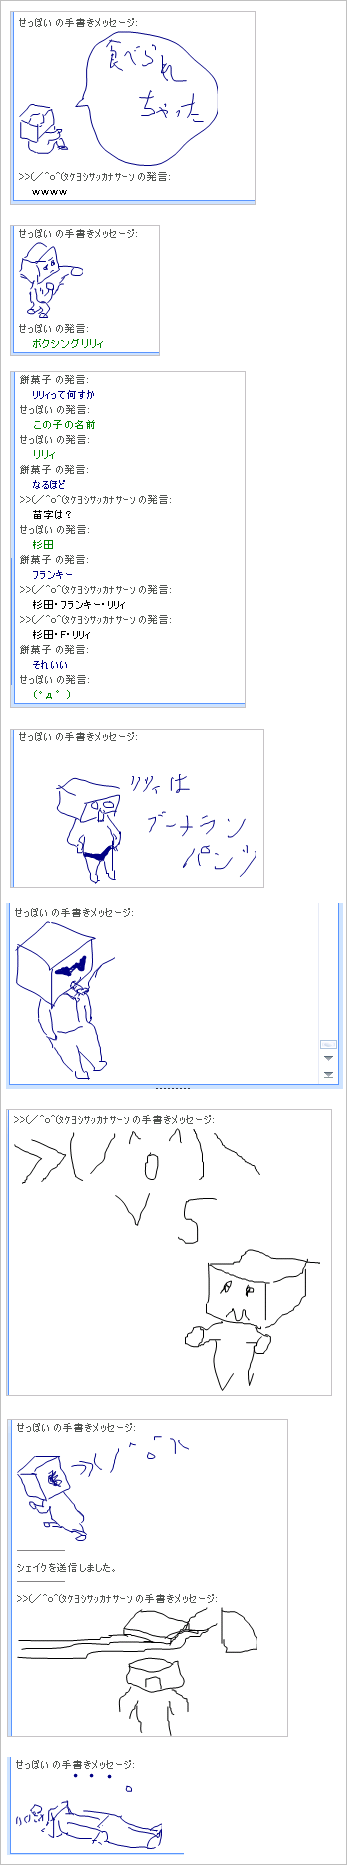 20070323_03.png